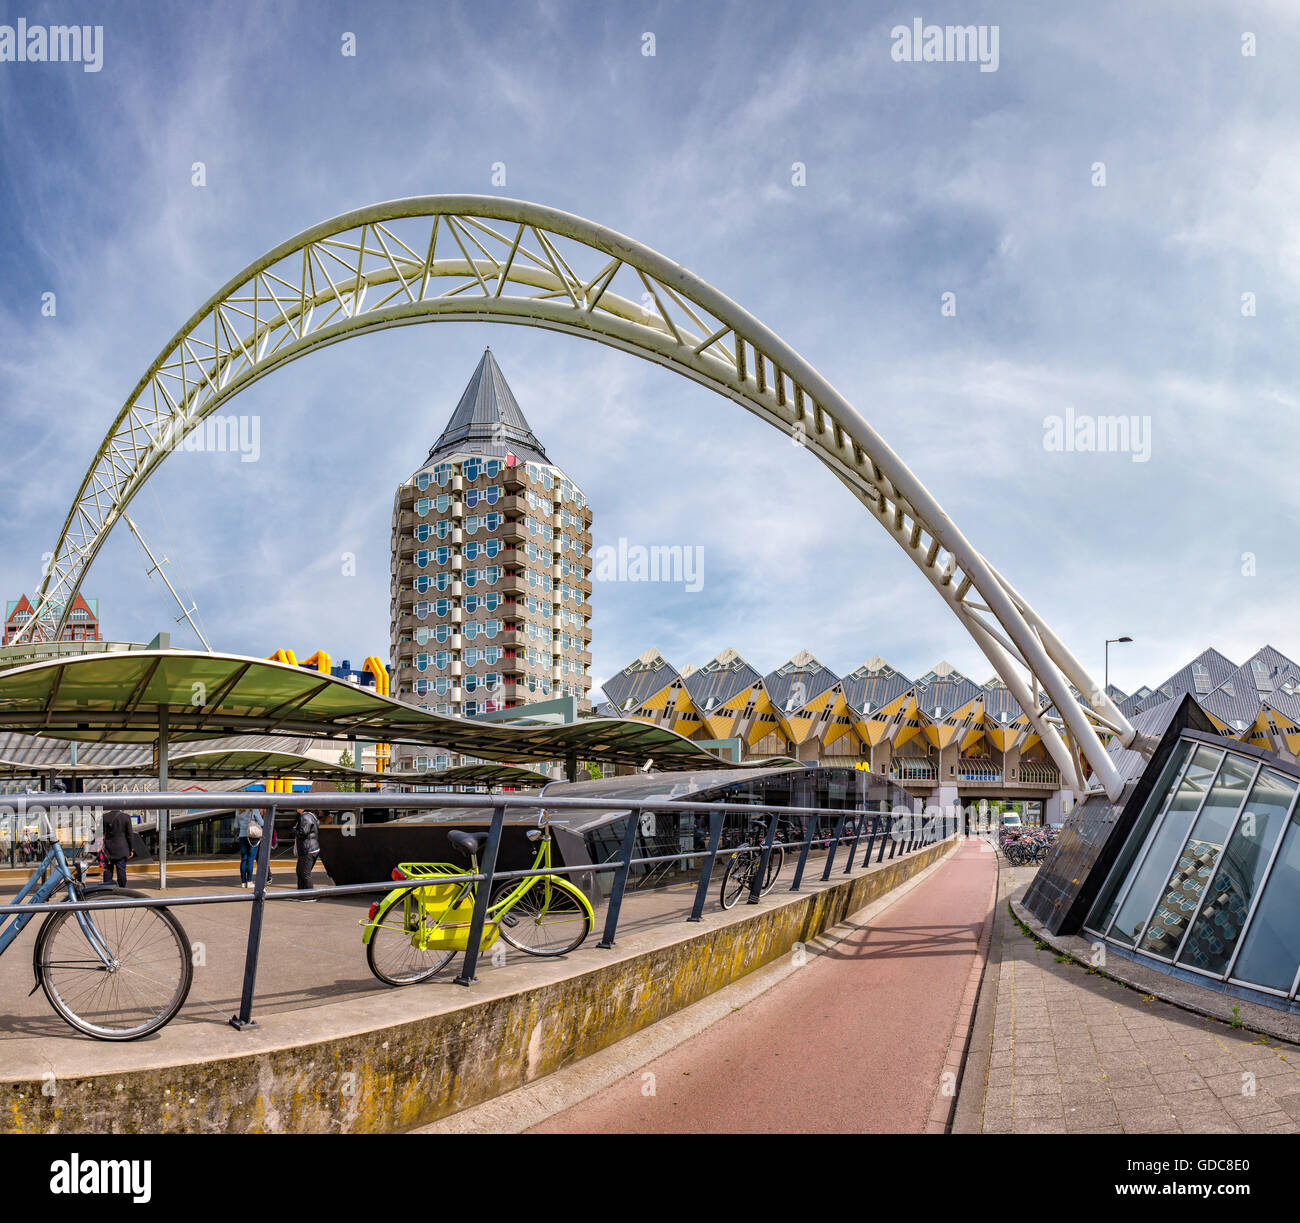 Rotterdam,Cube houses an railway station Blaak - Stock Image